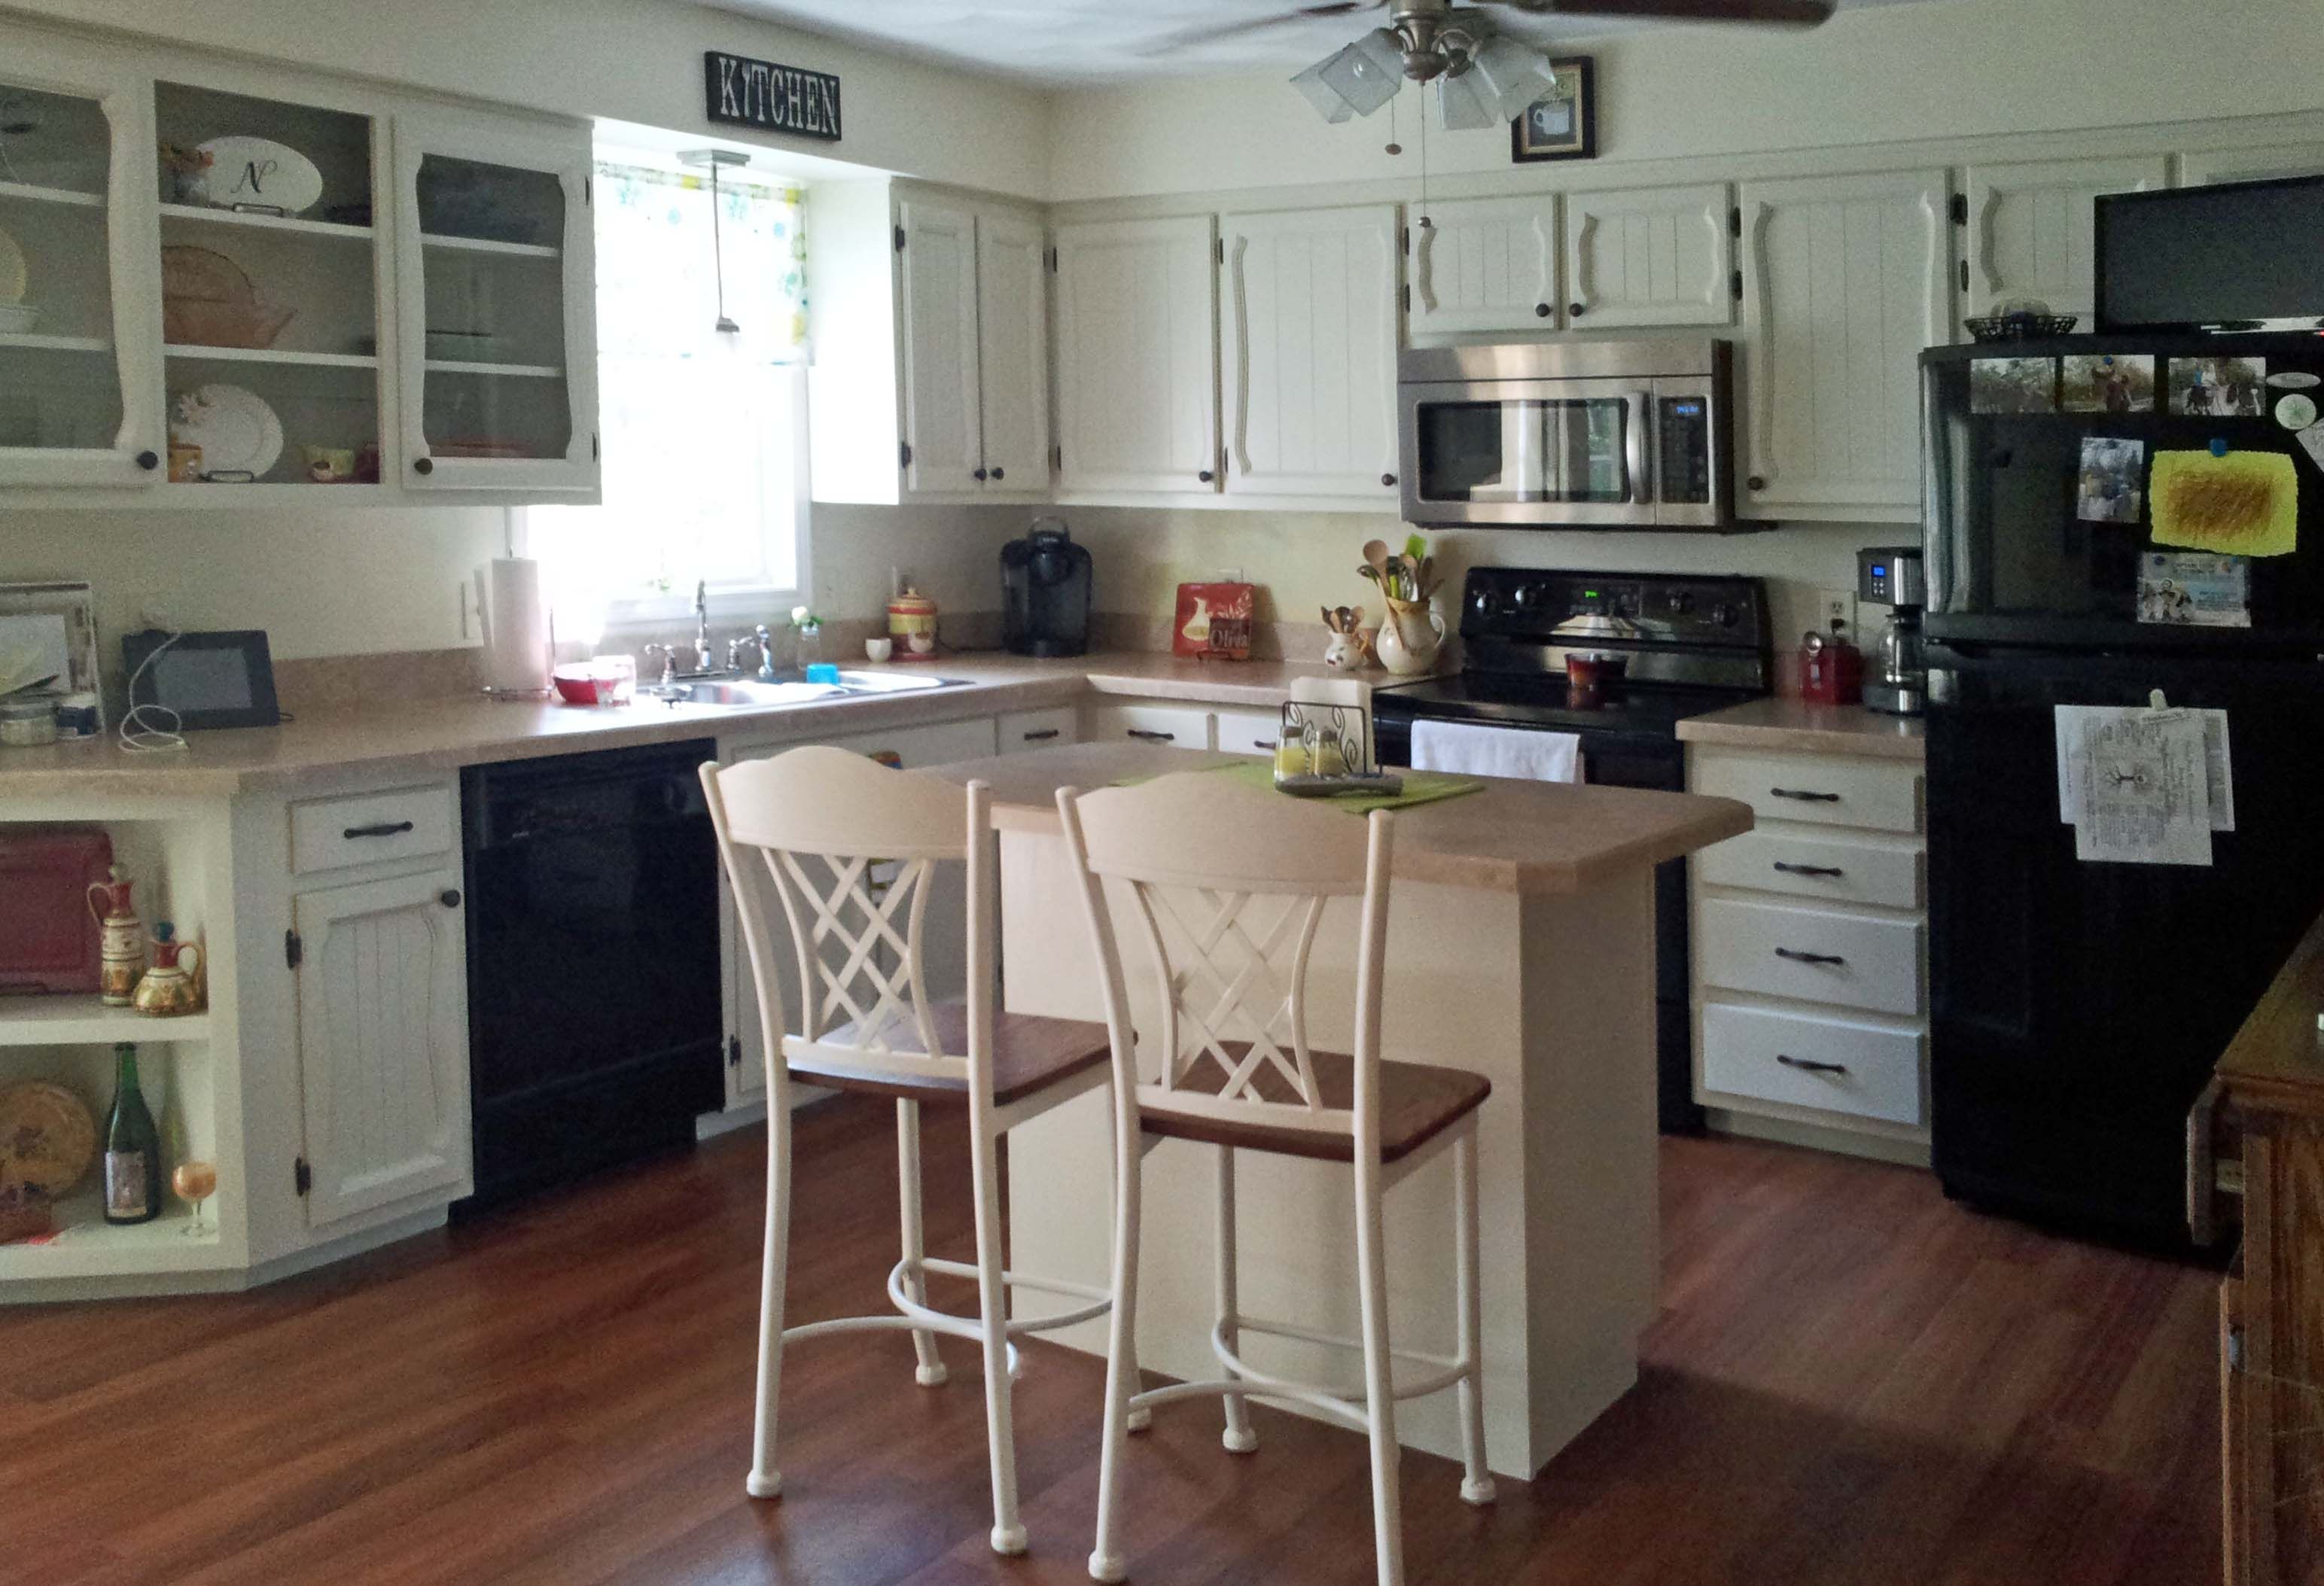 White Kitchen With Black Appliances Looks Mismatched Why Didn T I Buy Stainless Appliances Kitchen Design Small Kitchen Cabinets Kitchen Remodel